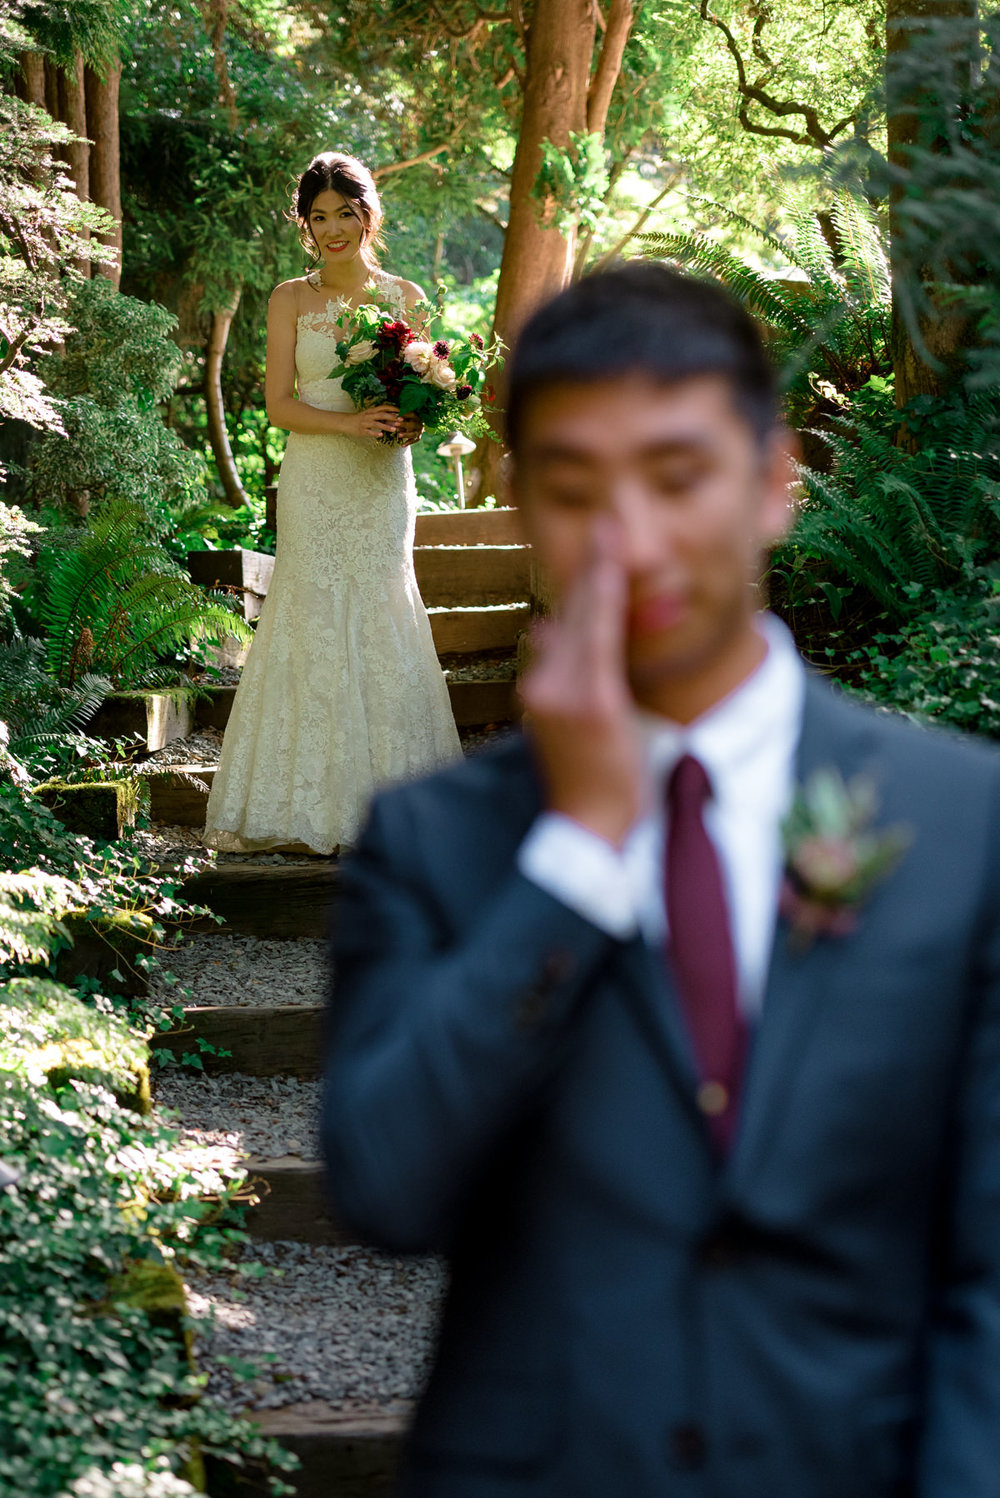 Andrew Tat - Documentary Wedding Photography - JM Cellars - Woodinville, Washington -Tammy & Aaron - 07.jpg